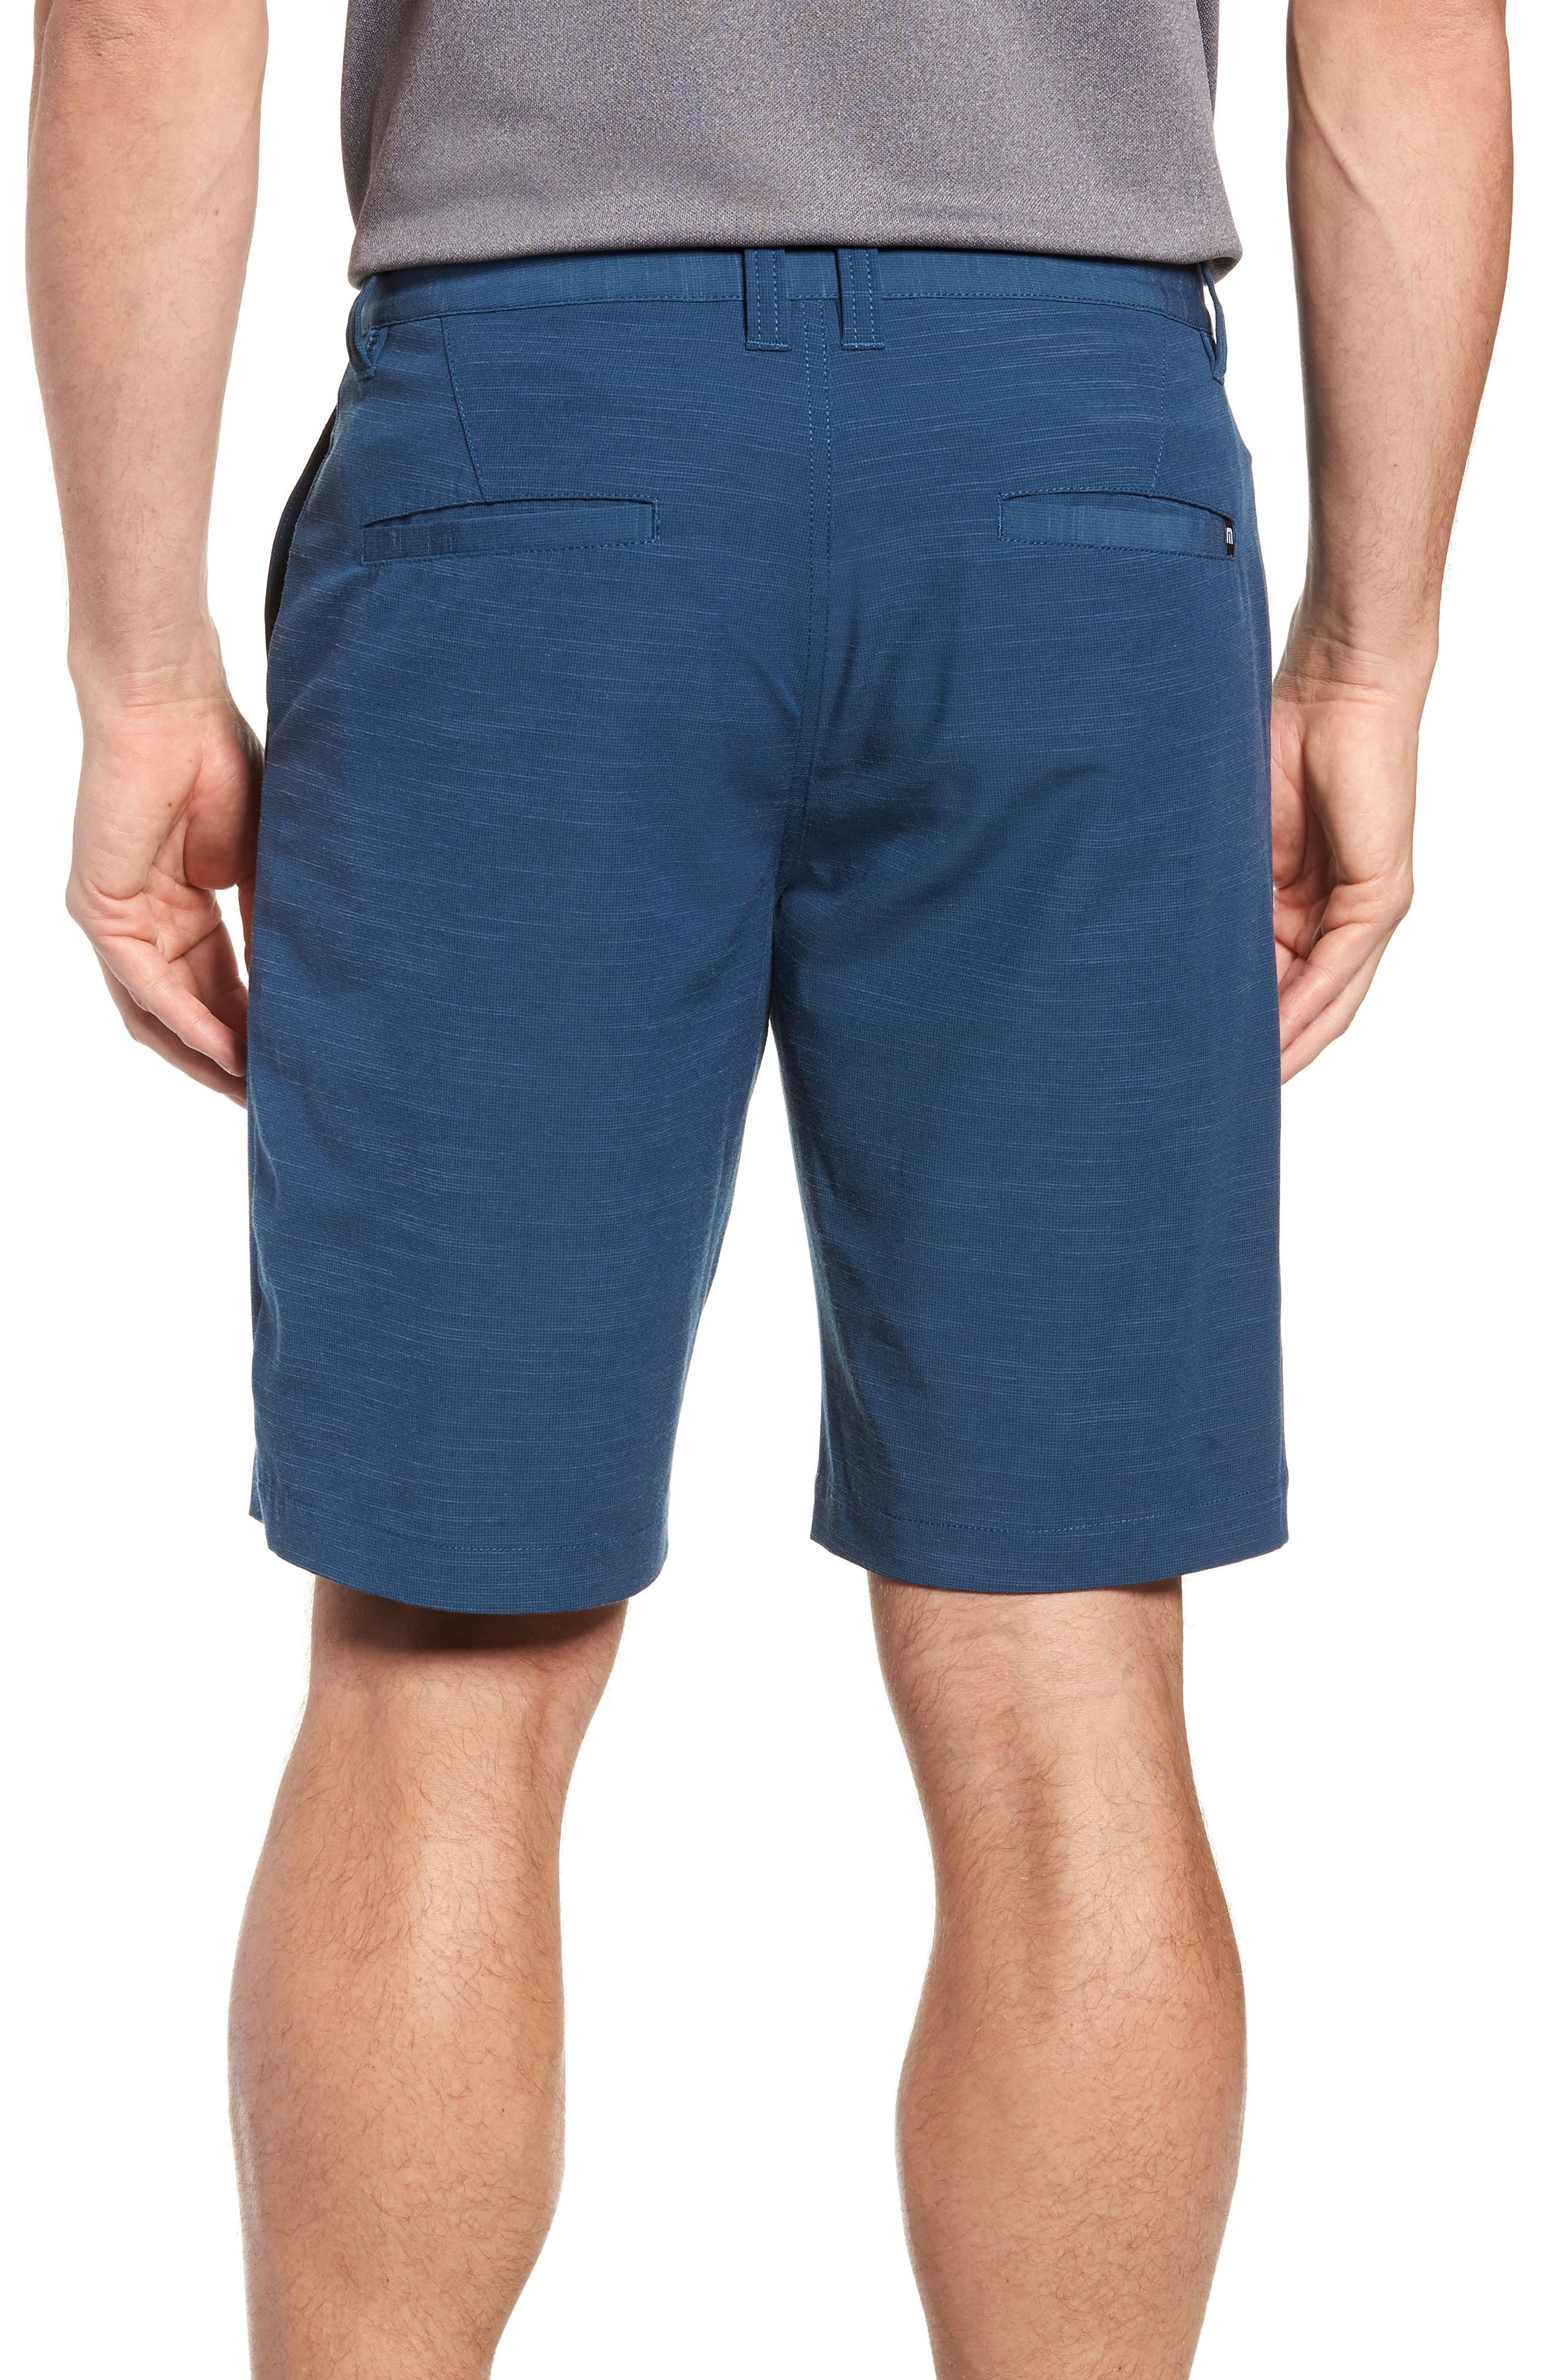 Undertow Hybrid Shorts,                             Alternate thumbnail 2, color,                             BLUE WING TEAL